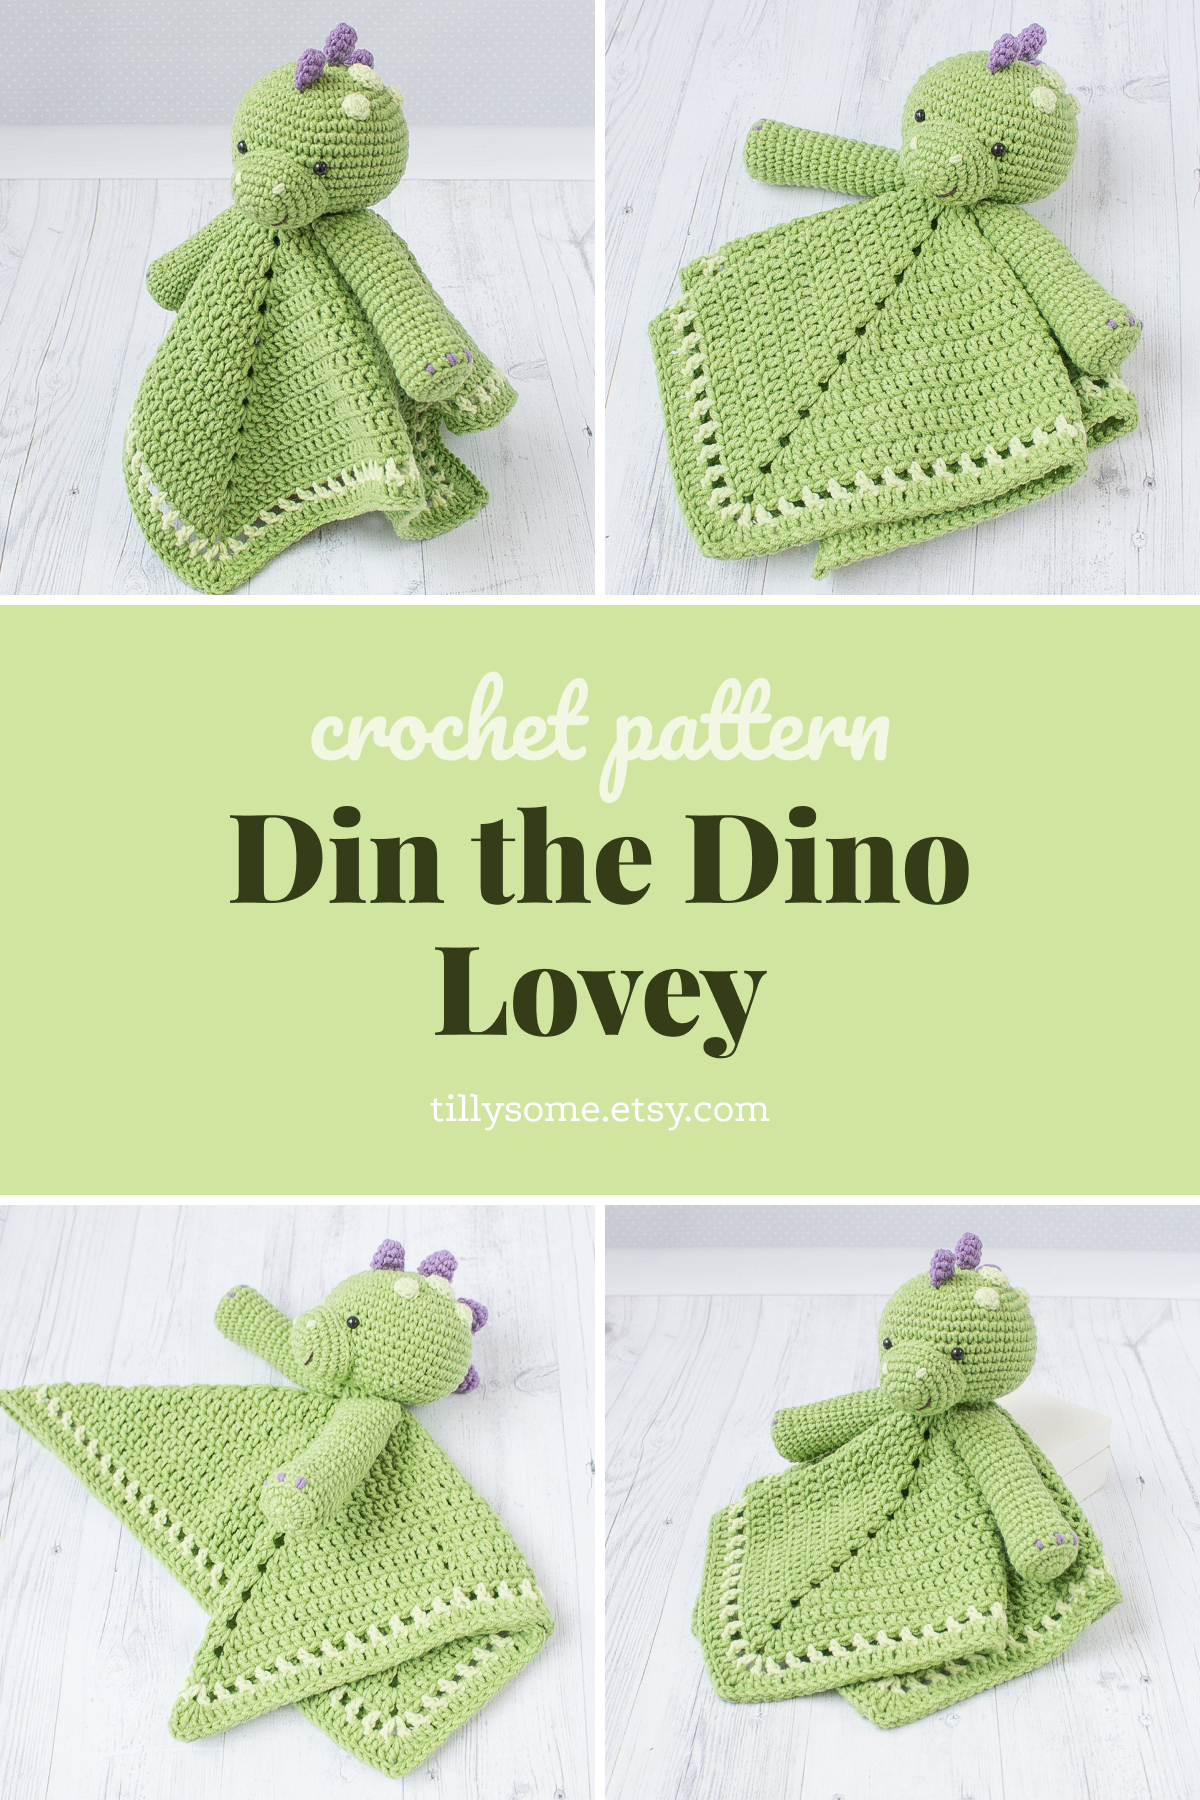 Crochet Pattern Security Blanket Din the Dino Lovey | Security Blanket Pattern | Crochet Lovey Pattern | Baby Animal Blanket — PDF Crochet #securityblankets Din the Dino Lovey is a plush toy and security blanket all in one! He will become a good friend for your baby.The pattern is very easy to follow: it contains detailed text instructions and 55 photos on 14 pages. Written in US crochet terms. #securityblankets Crochet Pattern Security Blanket Din the Dino Lovey | Security Blanket Pattern | #crochetsecurityblanket